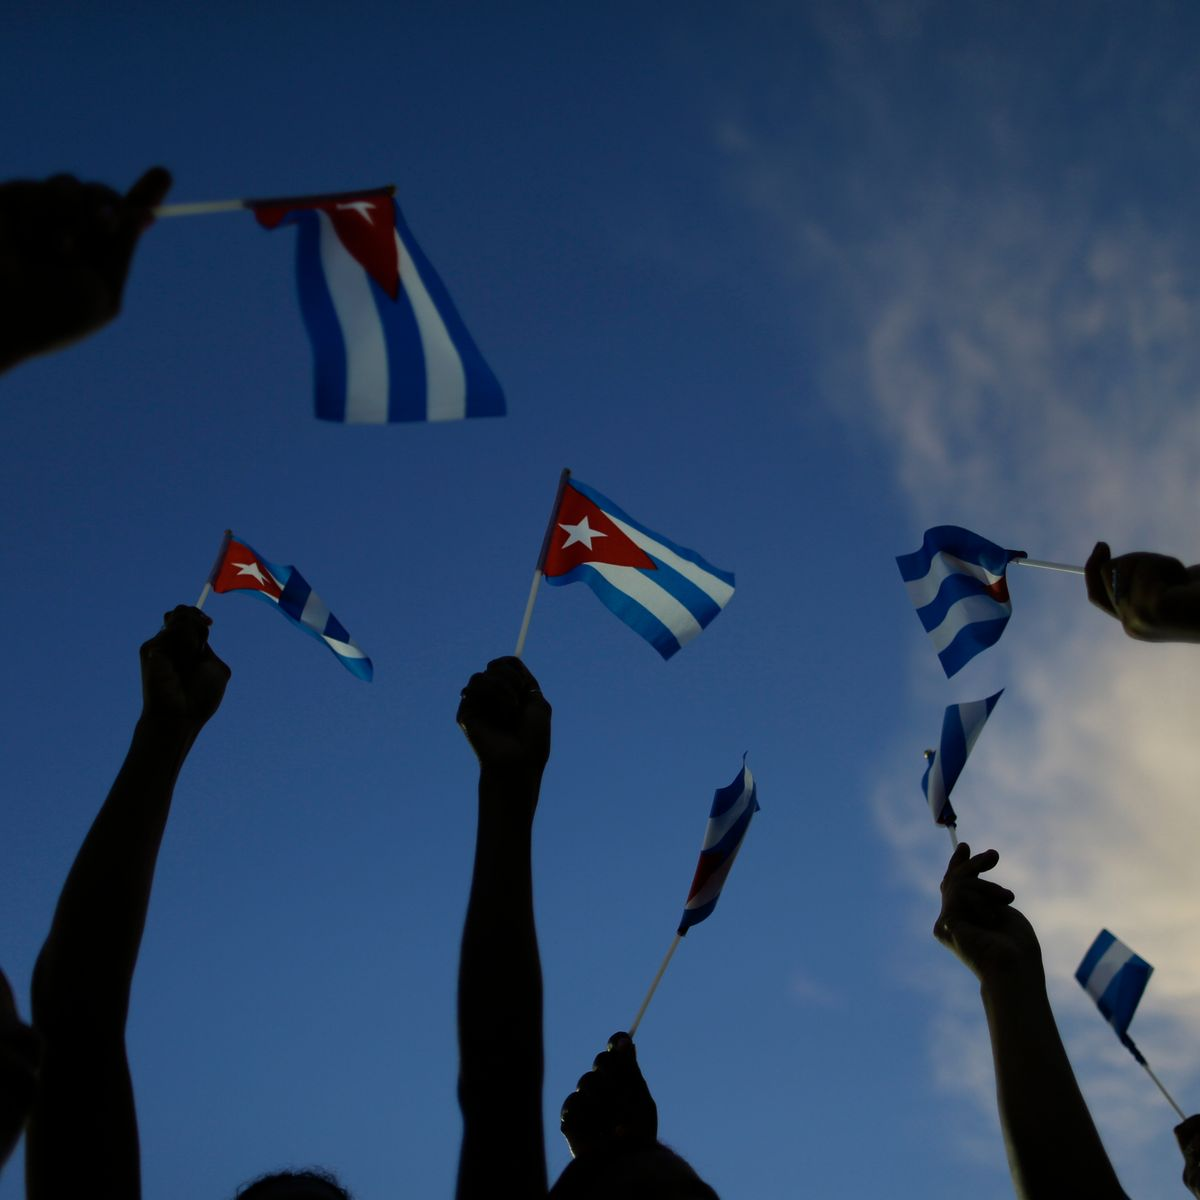 Cuba's new president: What to expect of Miguel Díaz-Canel